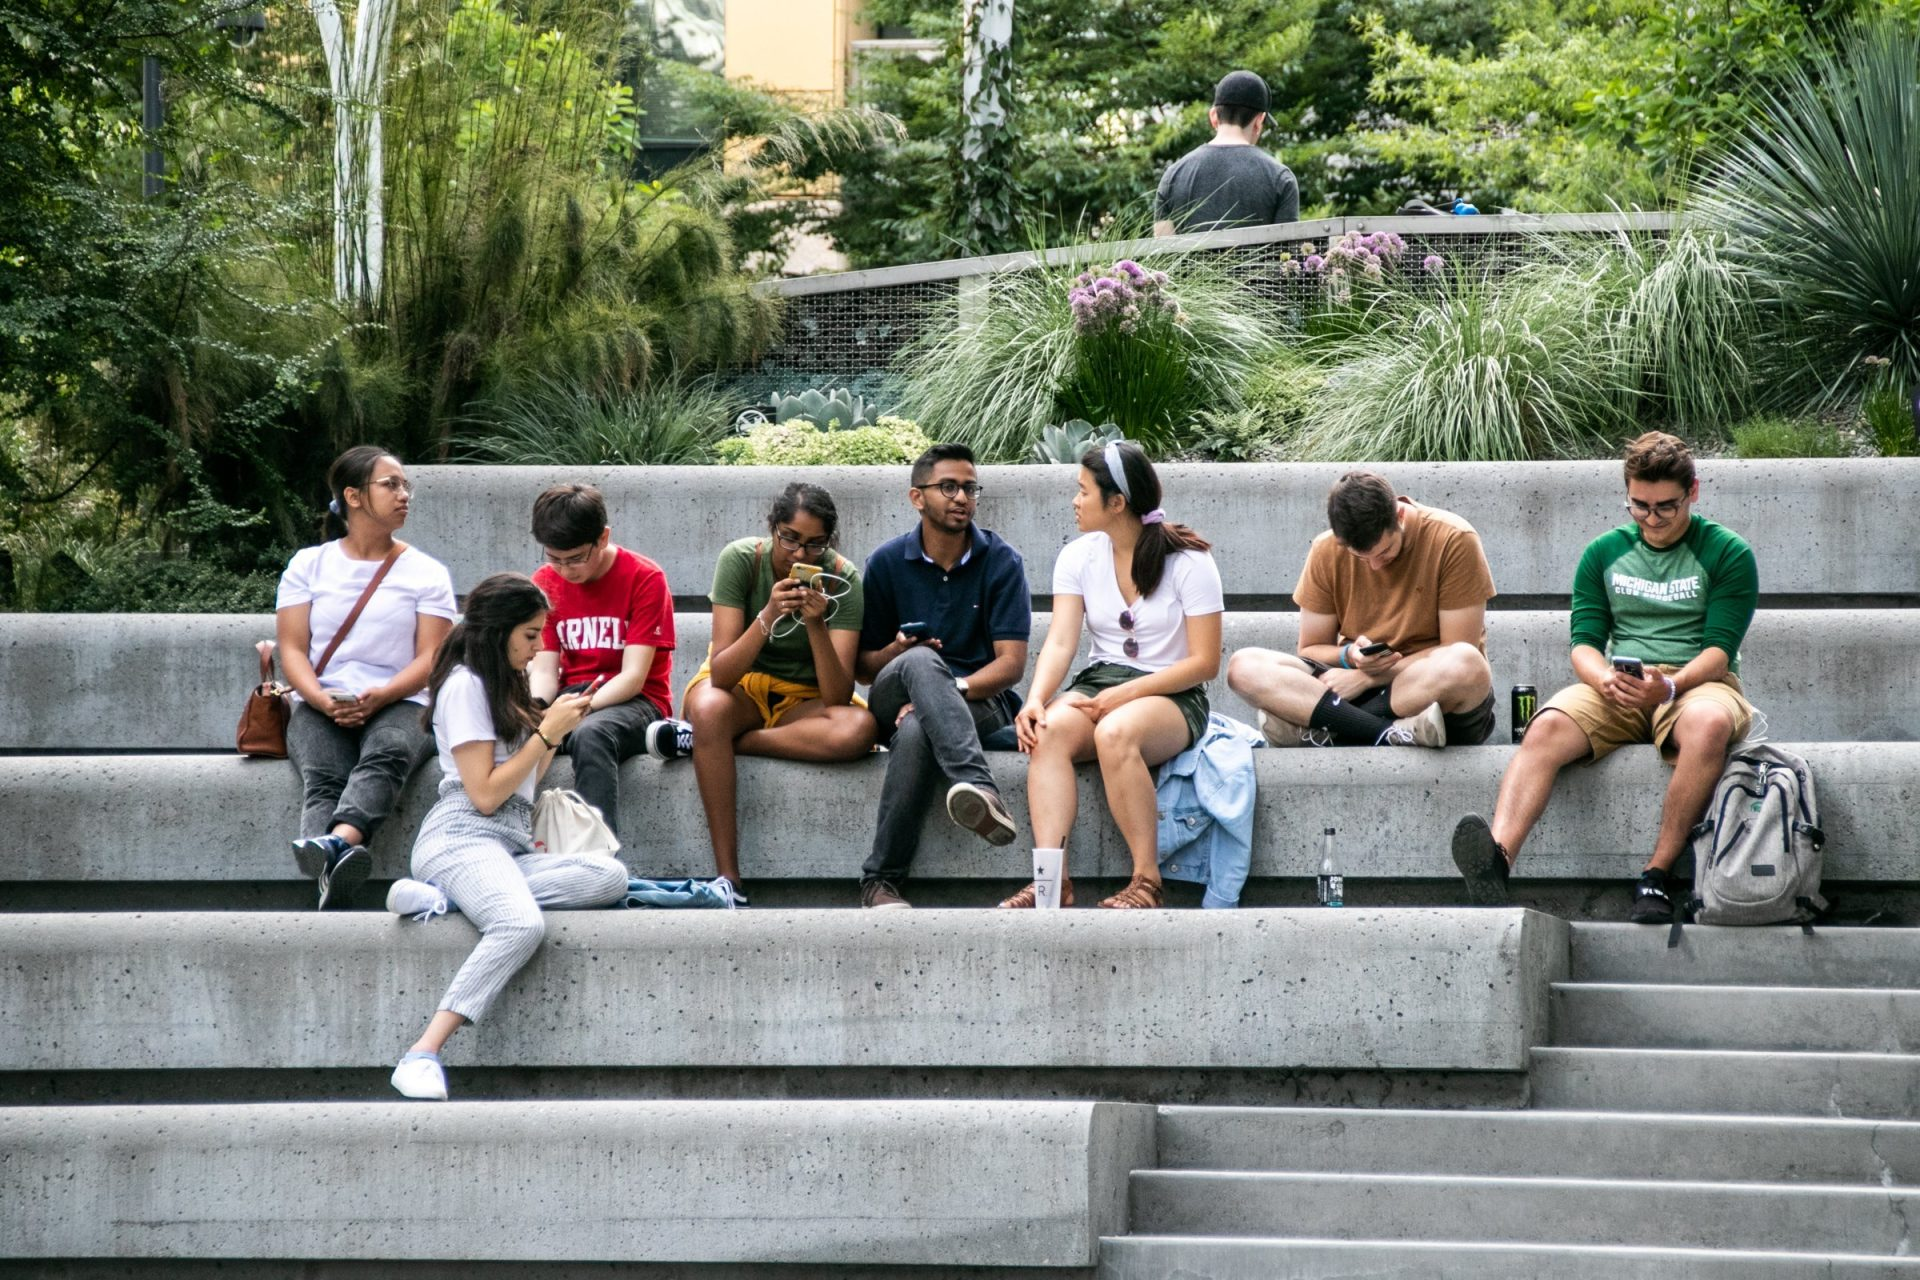 Group Of People Sitting On Concrete Steps